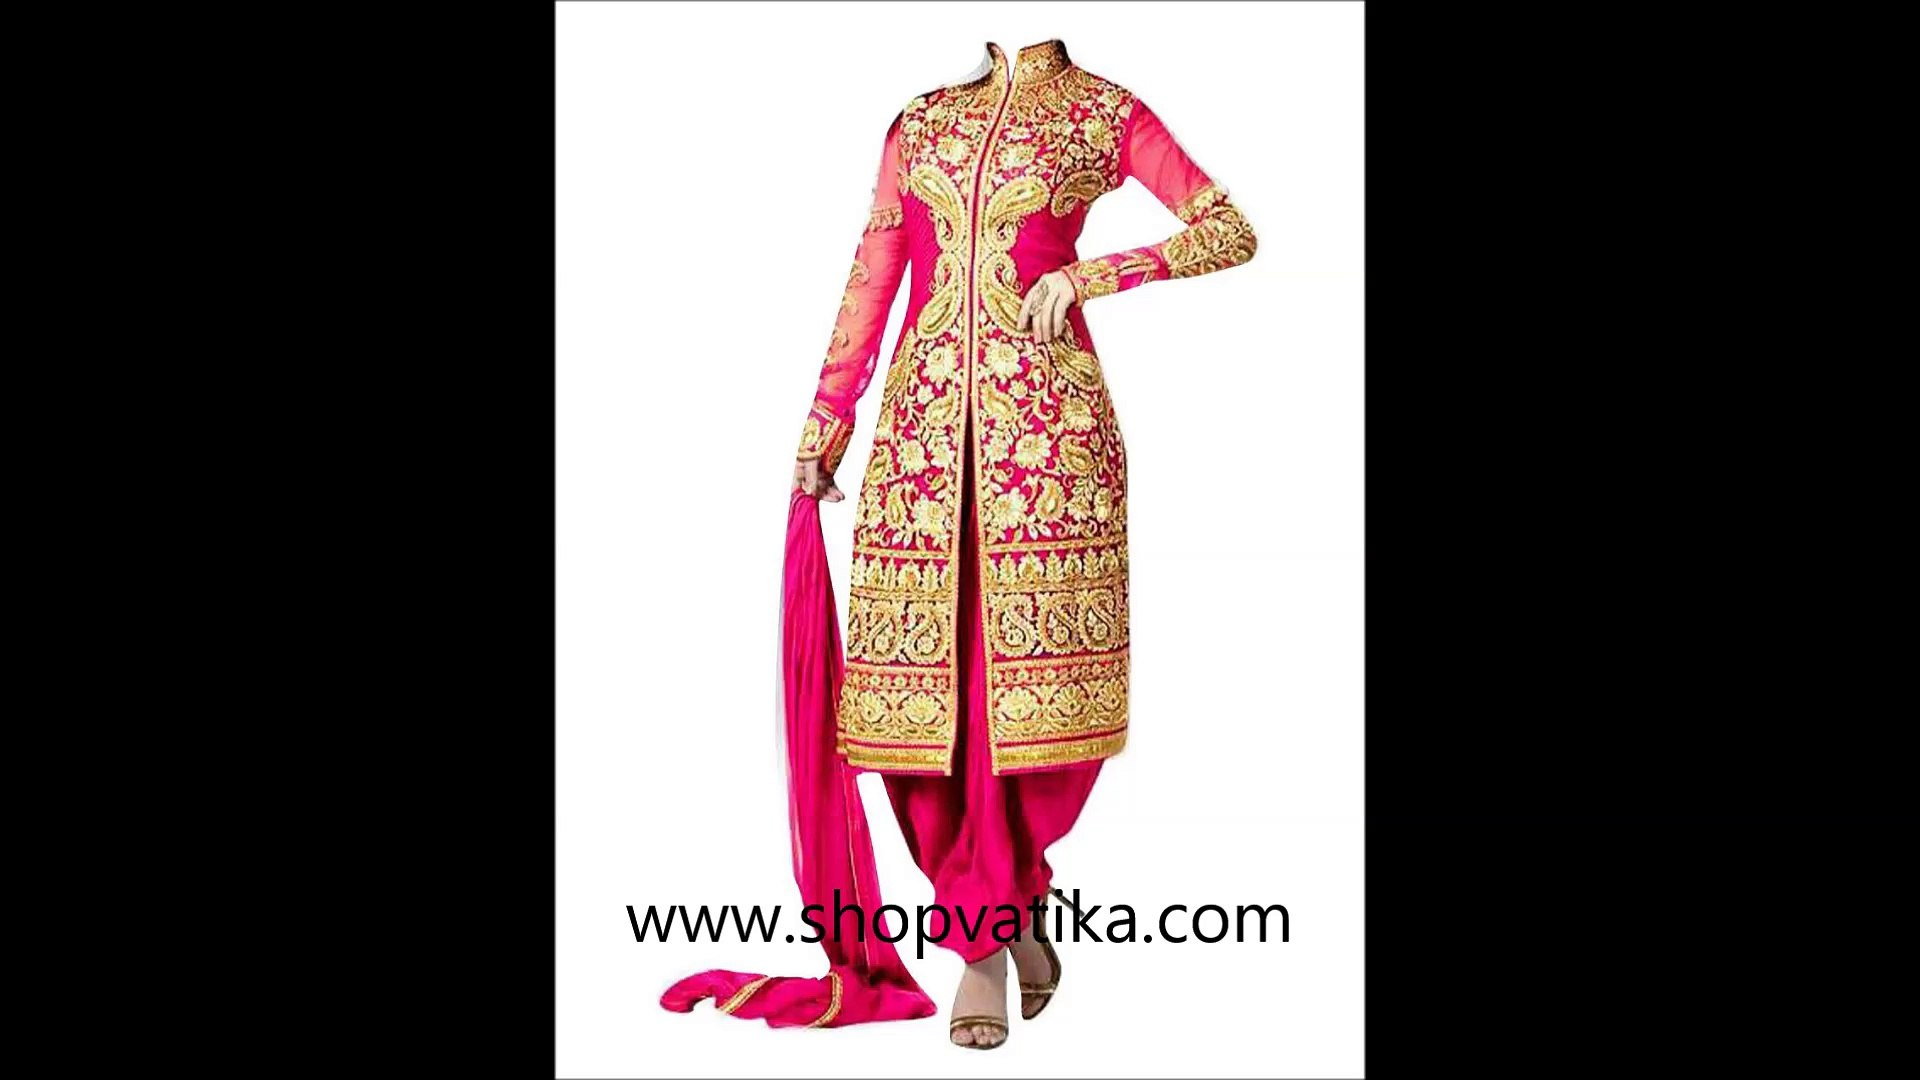 www.shopvatika.com -women's online fashion in Greater Noida